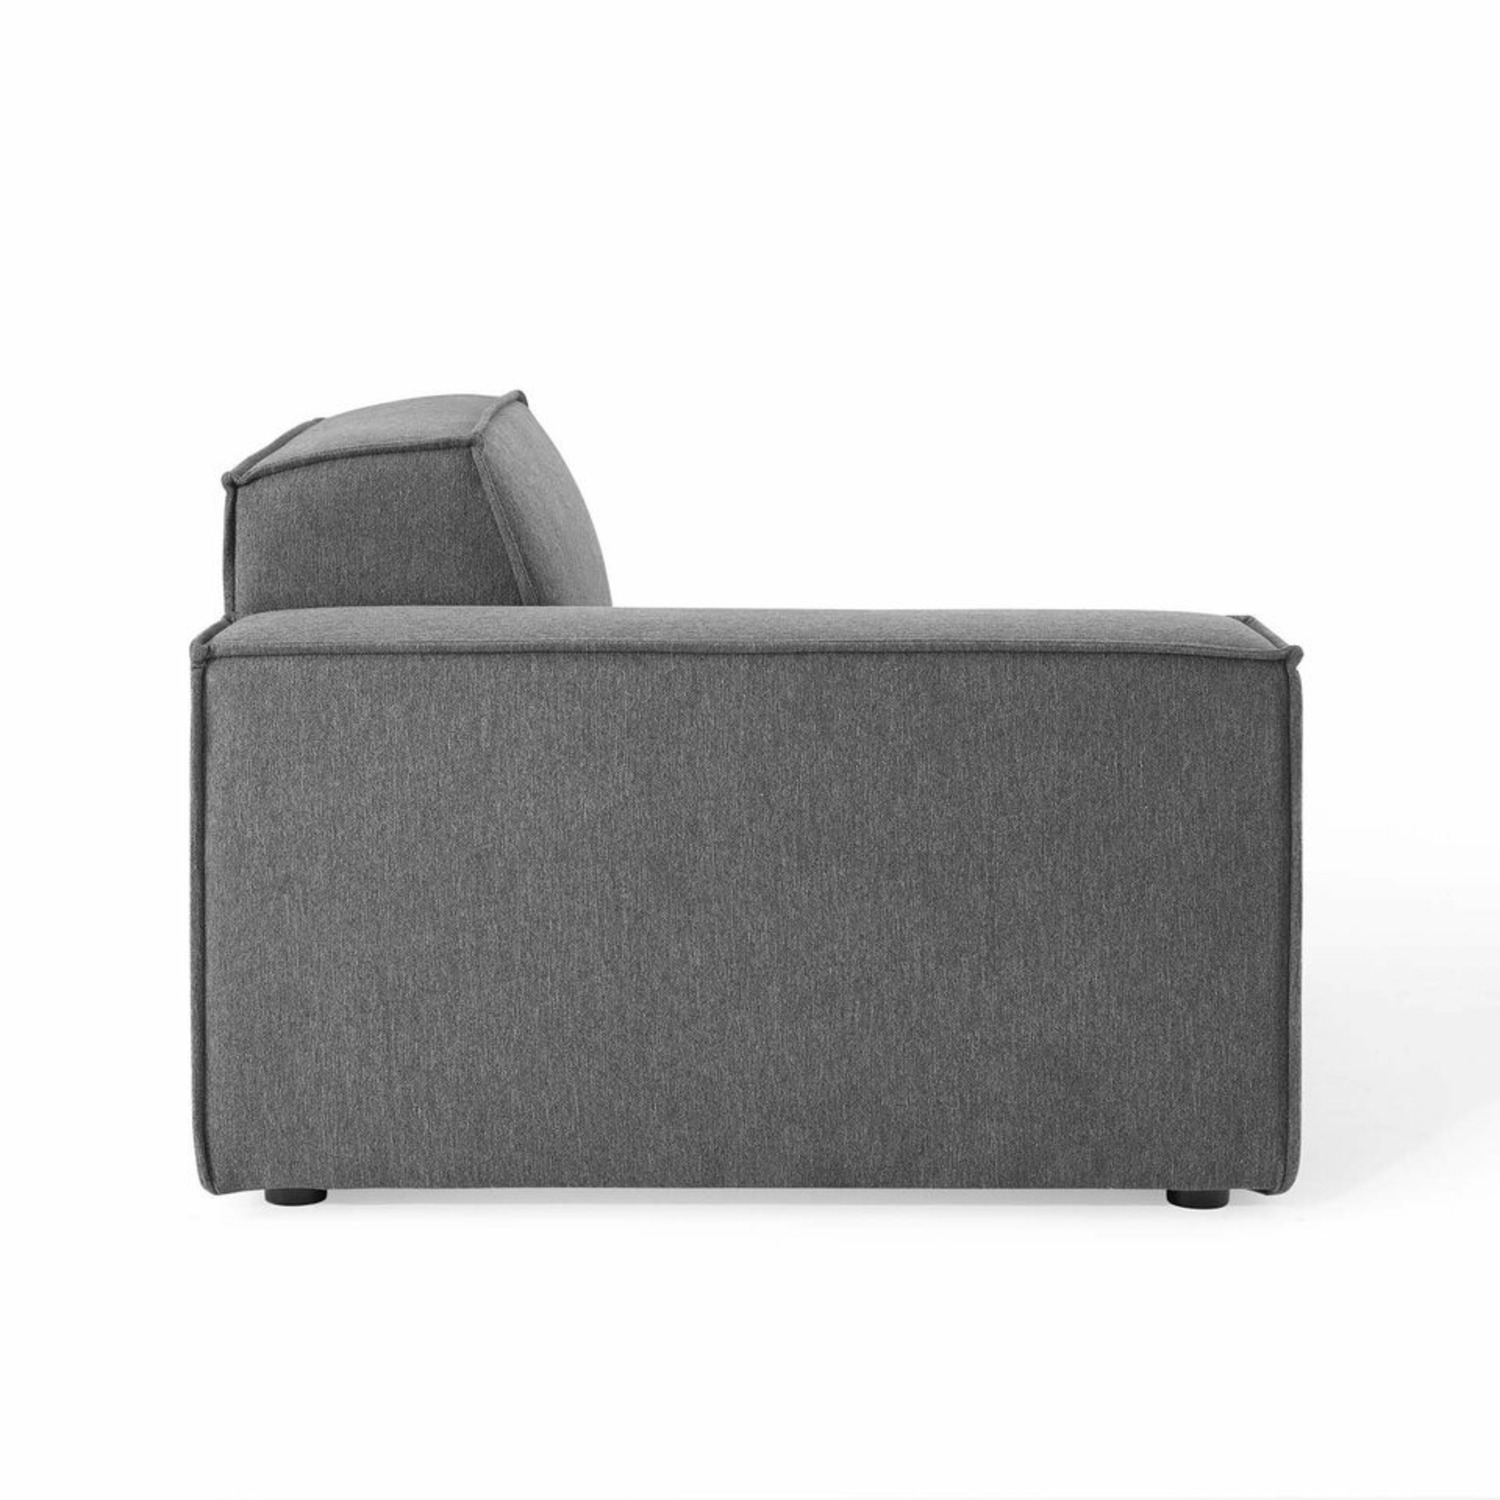 3-Piece Sectional Sofa In Charcoal Upholstery - image-6